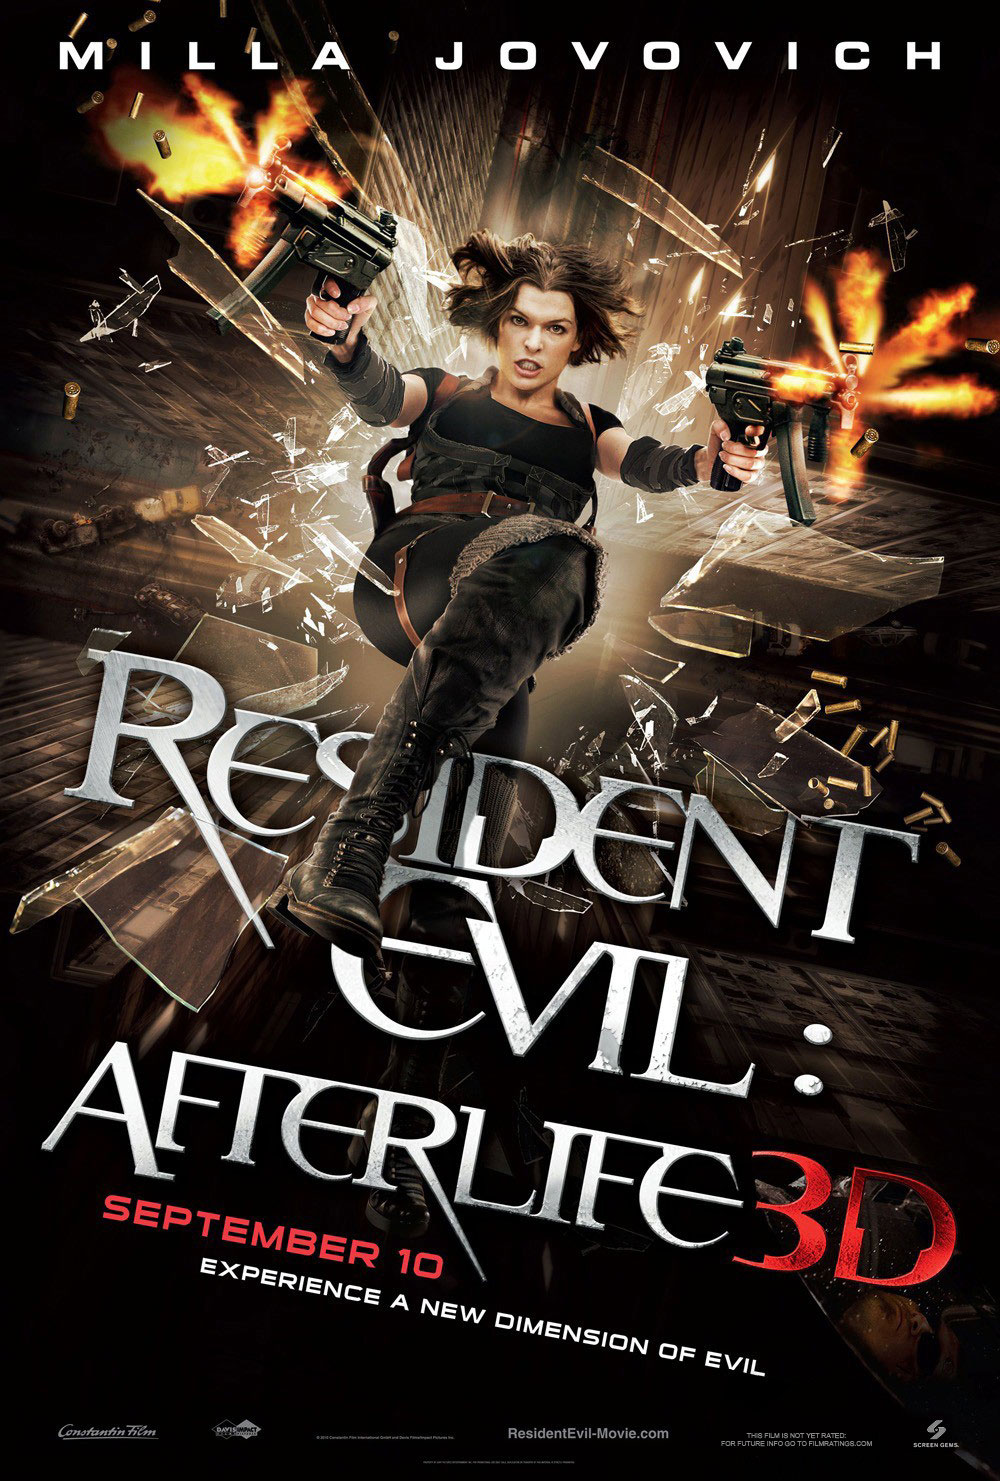 resident evil,resident,evil,resident evil retribution,resident evil afterlife in hindi,resident evil 6,resident evil afterlife full movie in hindi,resident evil afterlife full movie in hindi 2010,resident evil: the final chapter,resident evil afterlife full movie in hindi dubbed hd,afterlife,resident evil movie,resident evil 5,resident evil afterlife,resident evil 4: afterlife